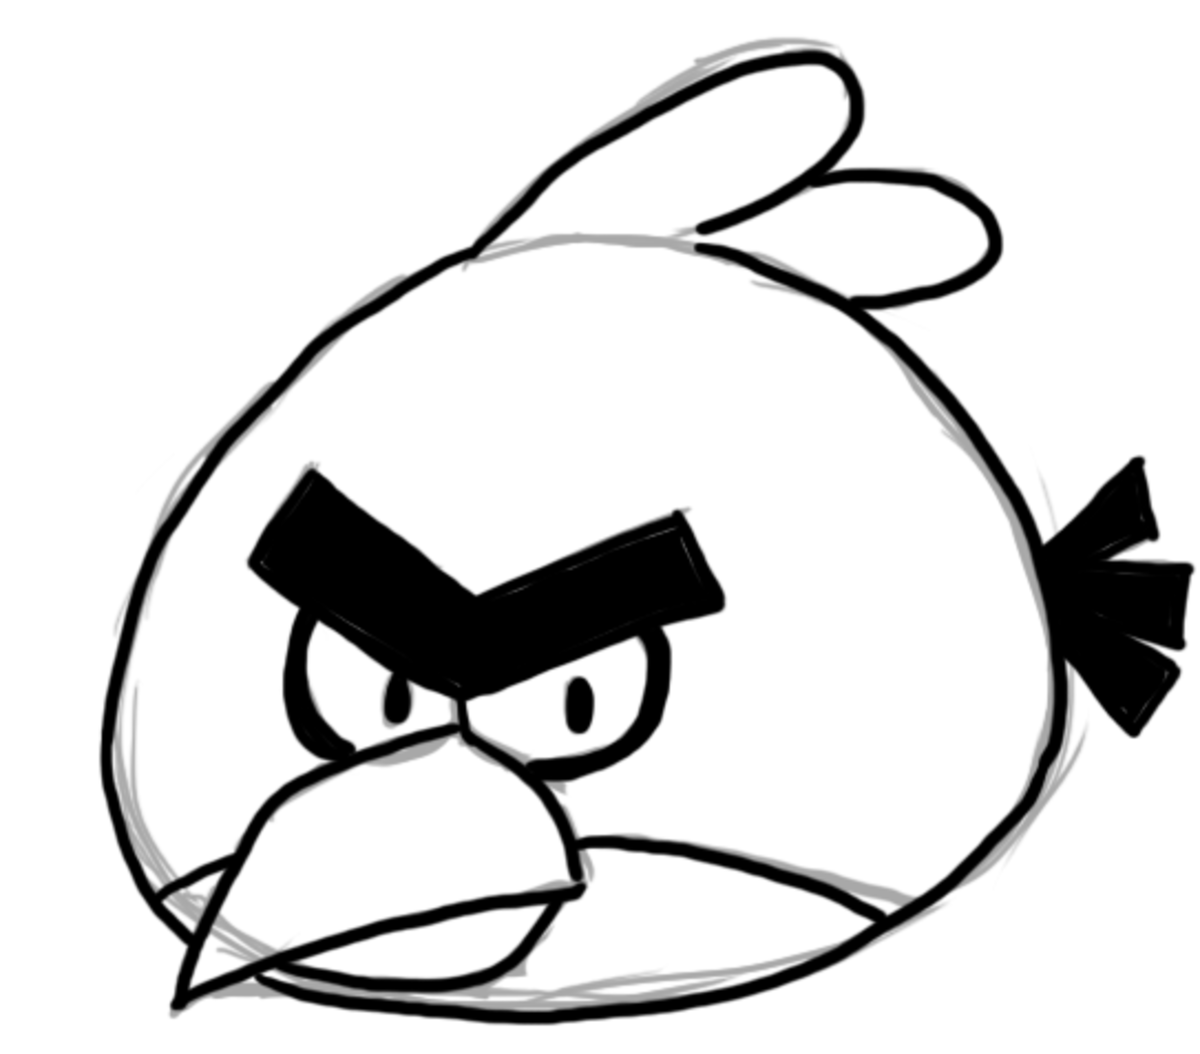 angry birds outline pictures all angry birds outline angry outline pictures birds